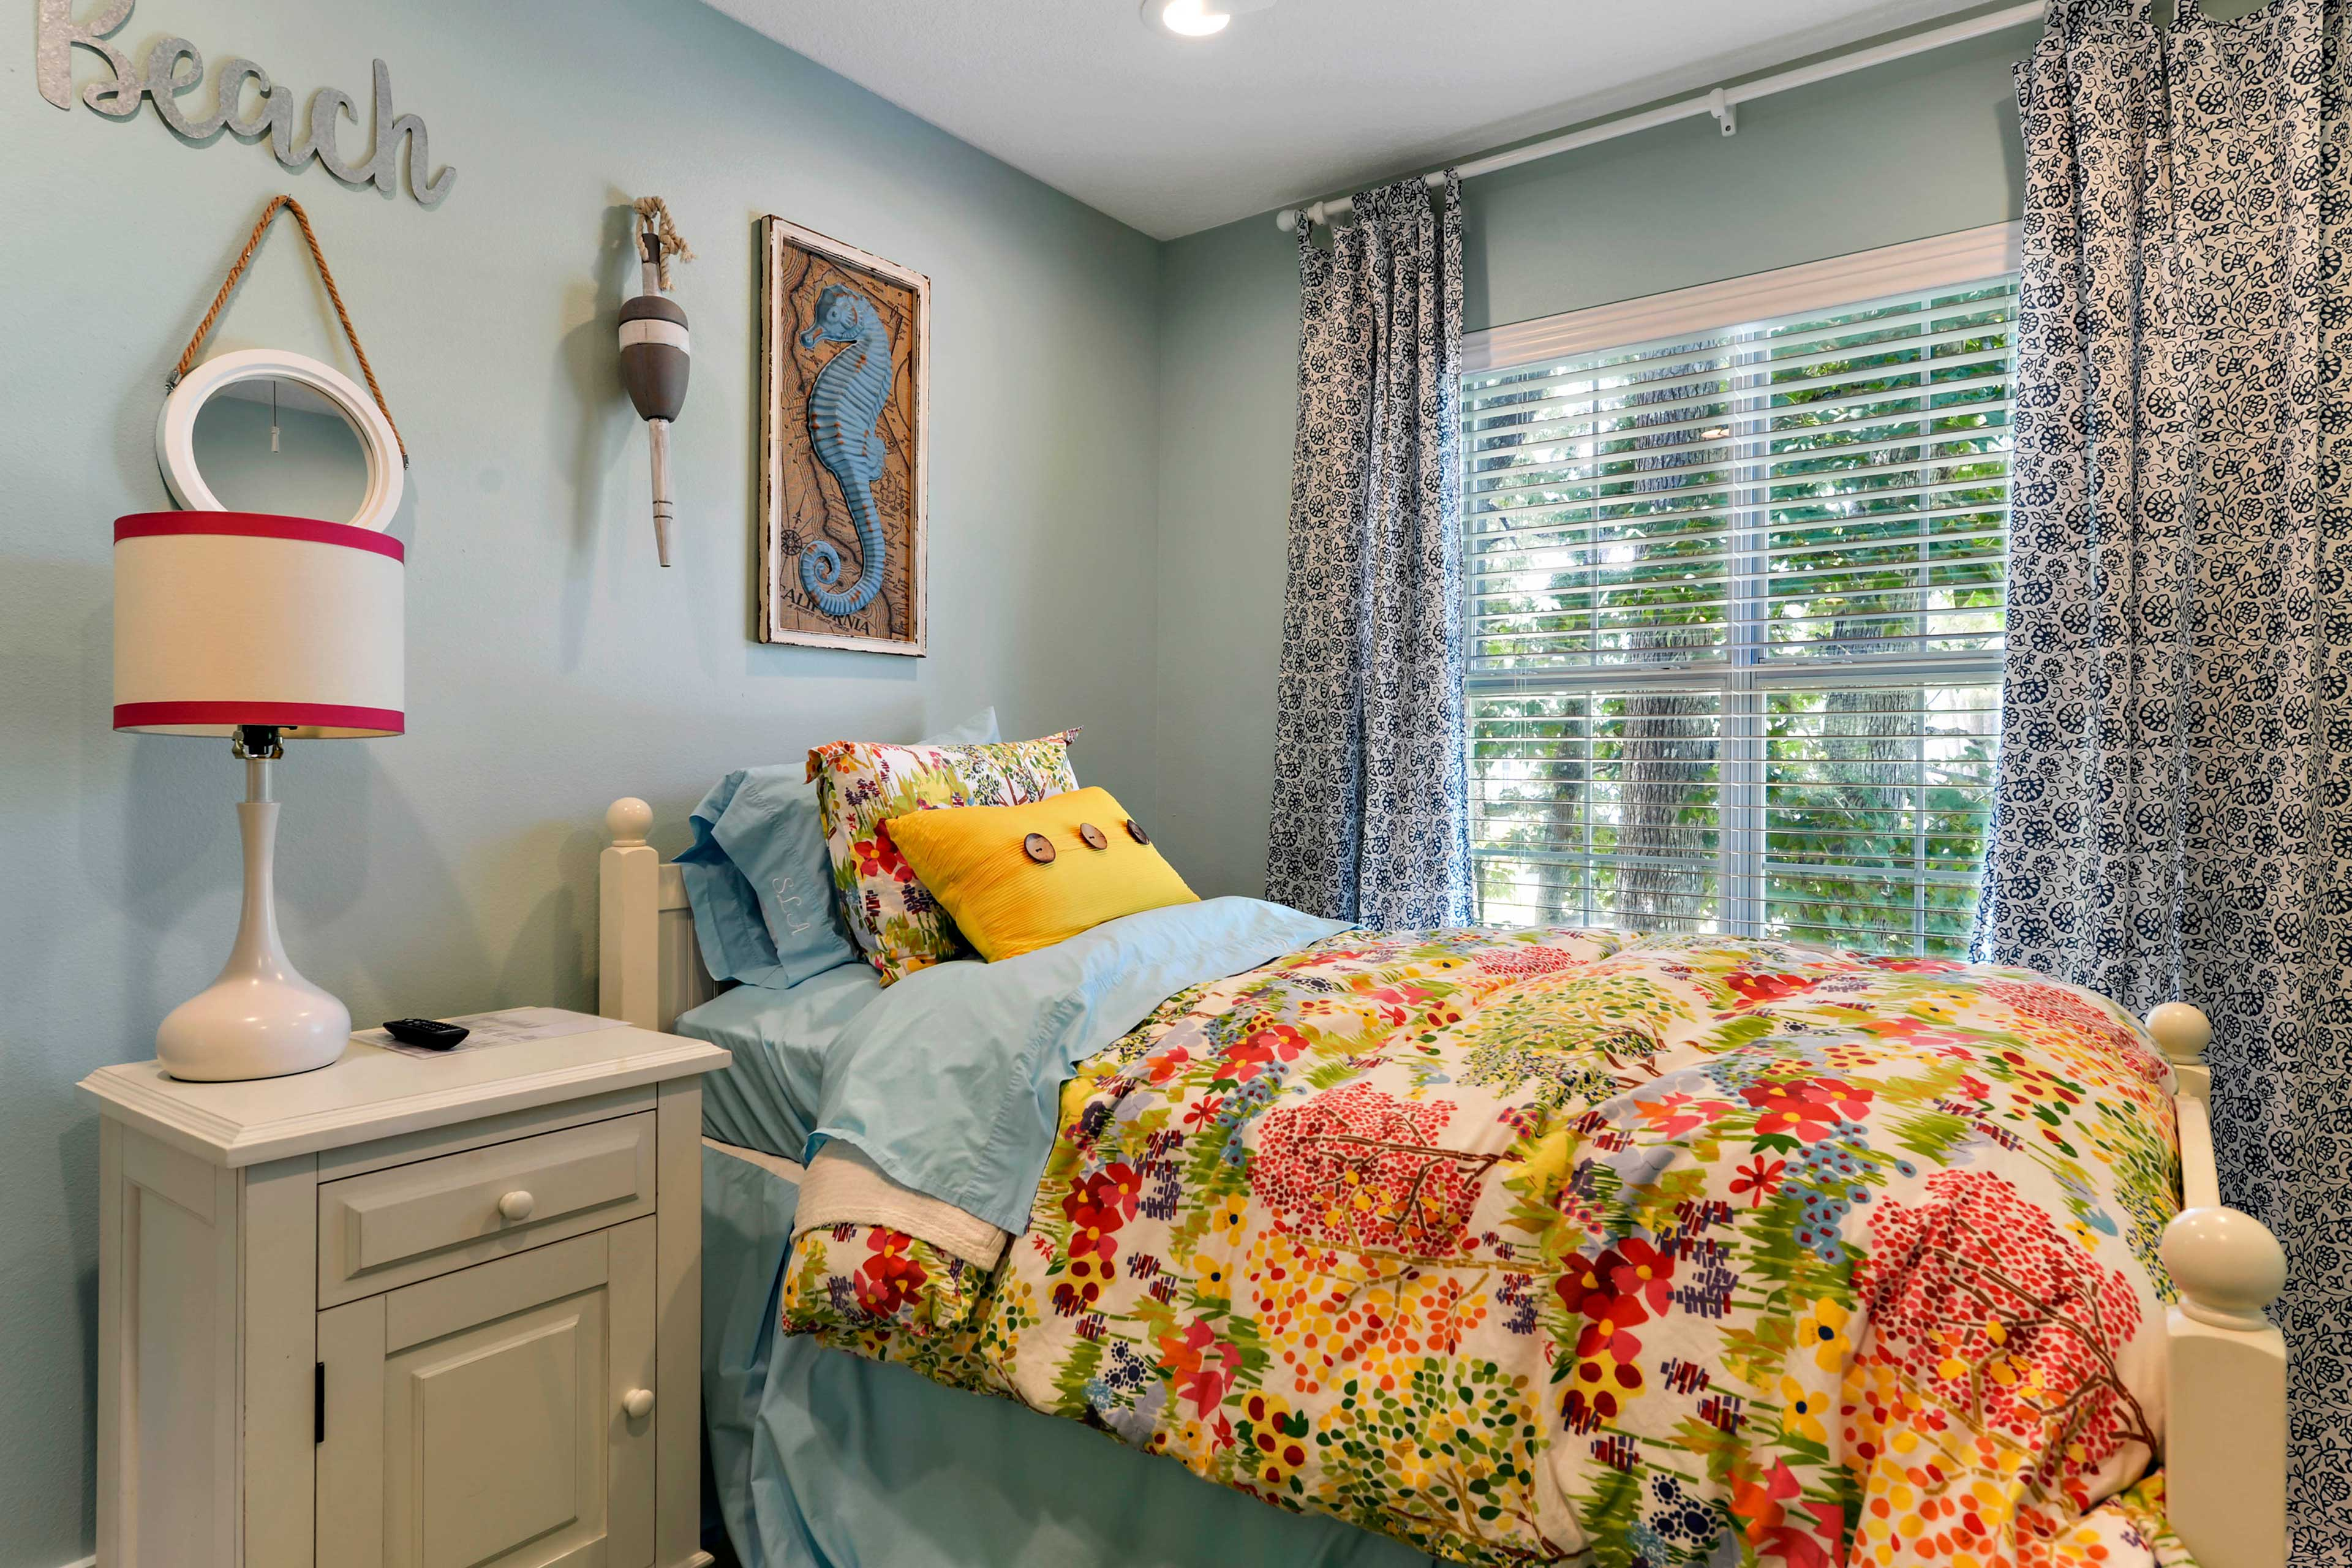 You'll love this colorful bedroom with a full bed and full trundle bed.